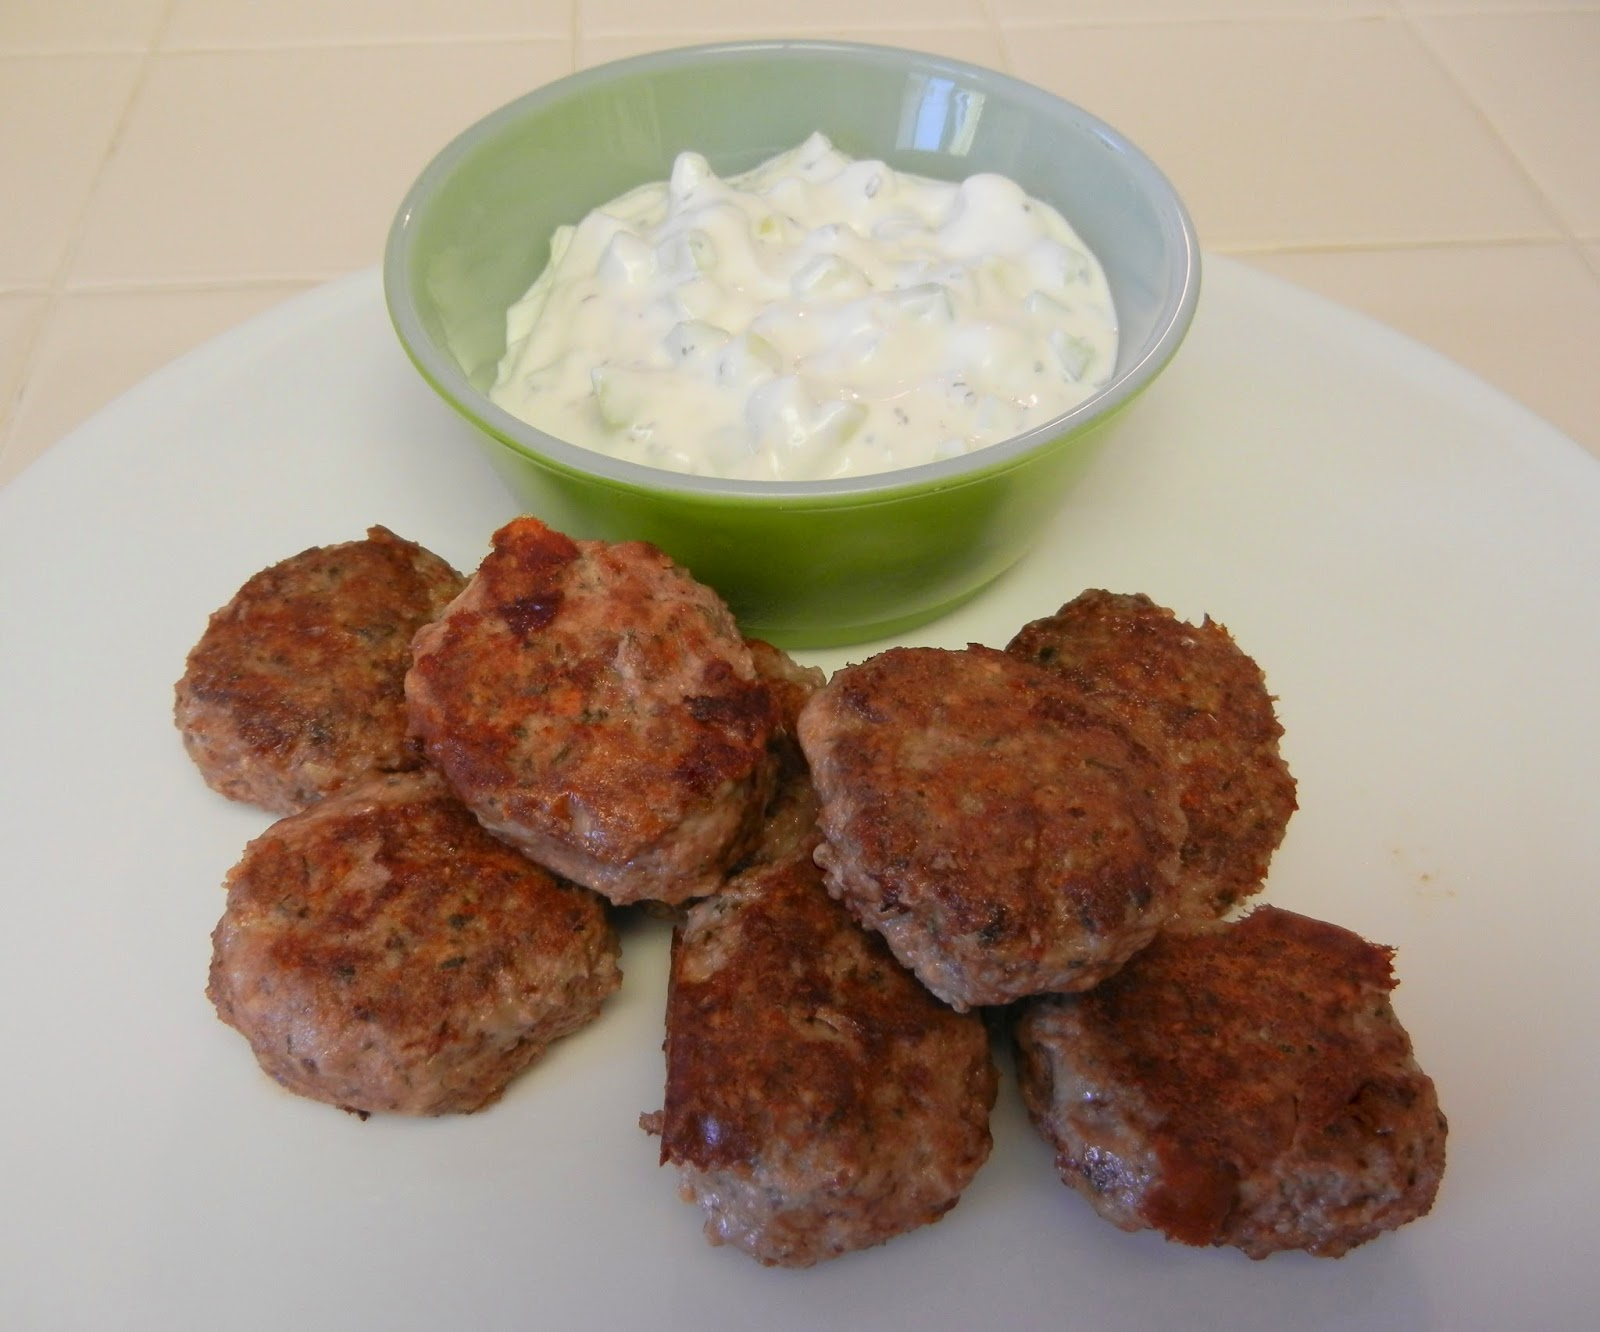 Eggface%2BBeef%2BKofta%2BLow%2BCarb%2BMeatballs%2BGreek%2BYogurt%2BMint%2BDip Weight Loss Recipes Post Weight Loss Surgery Menus: A day in my pouch